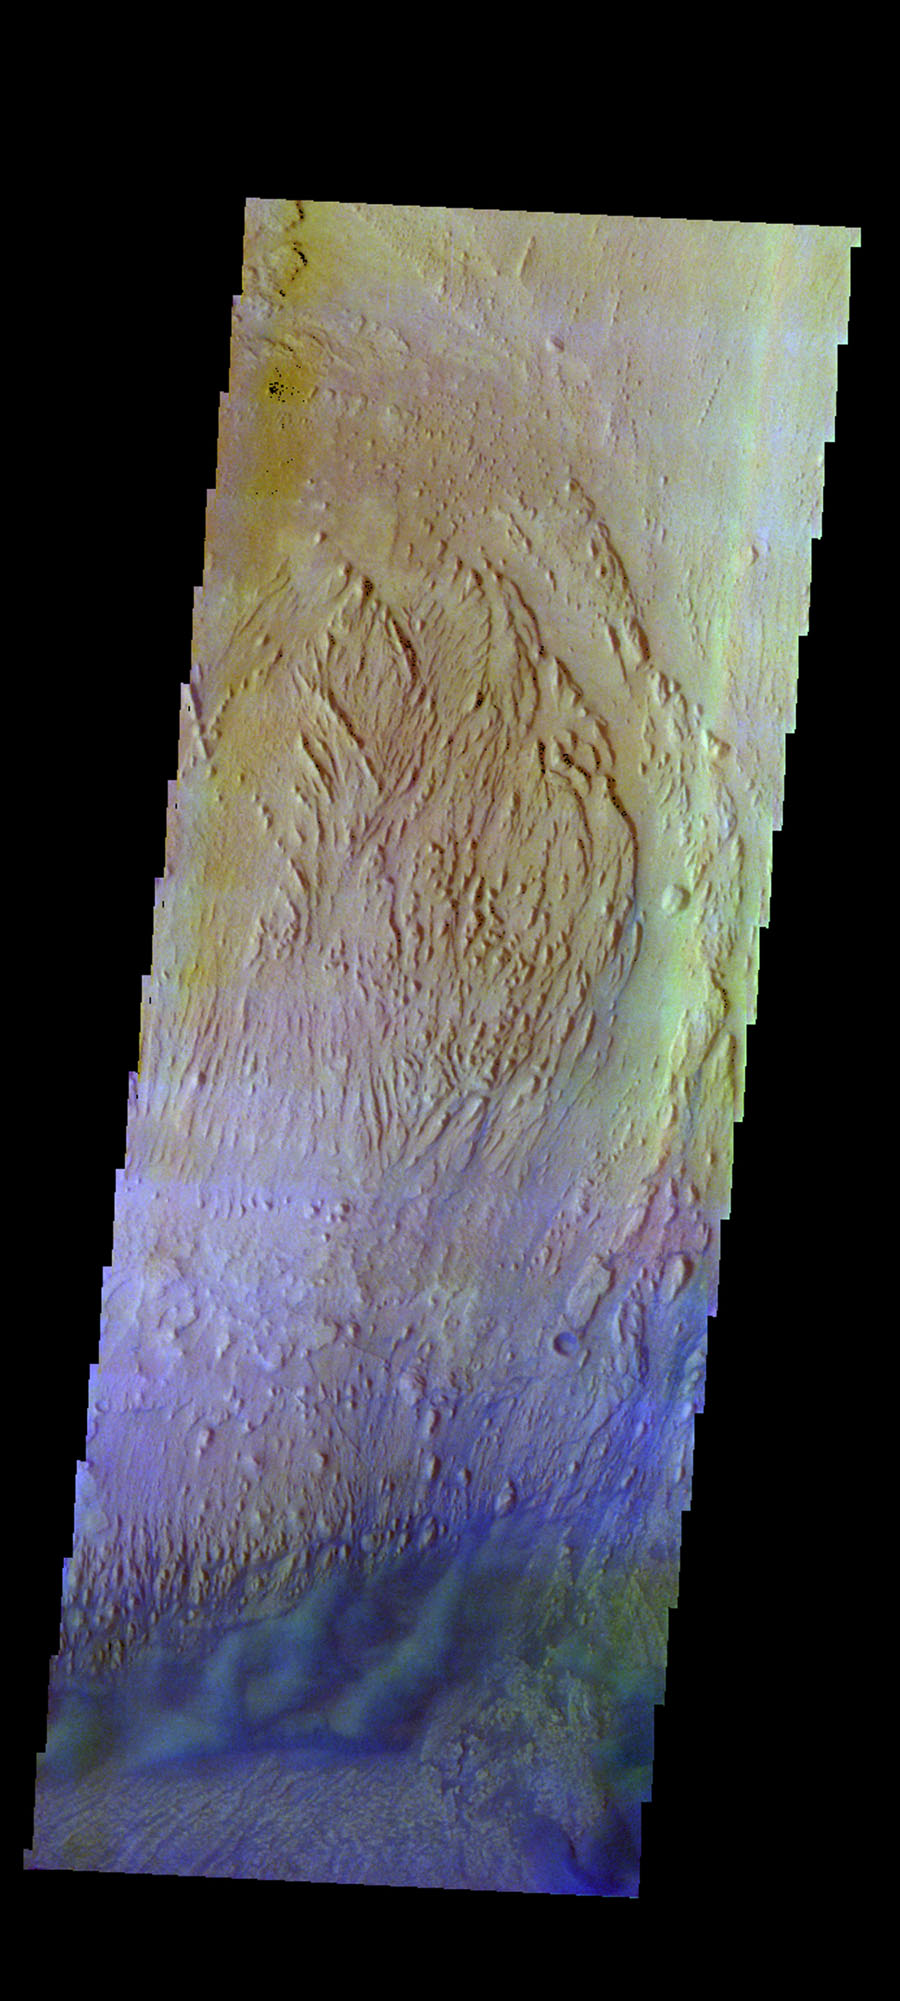 The THEMIS camera contains 5 filters. The data from different filters can be combined in multiple ways to create a false color image. This image from NASA's 2001 Mars Odyssey spacecraft shows part of the interior deposits and floor of Firsoff Crater.